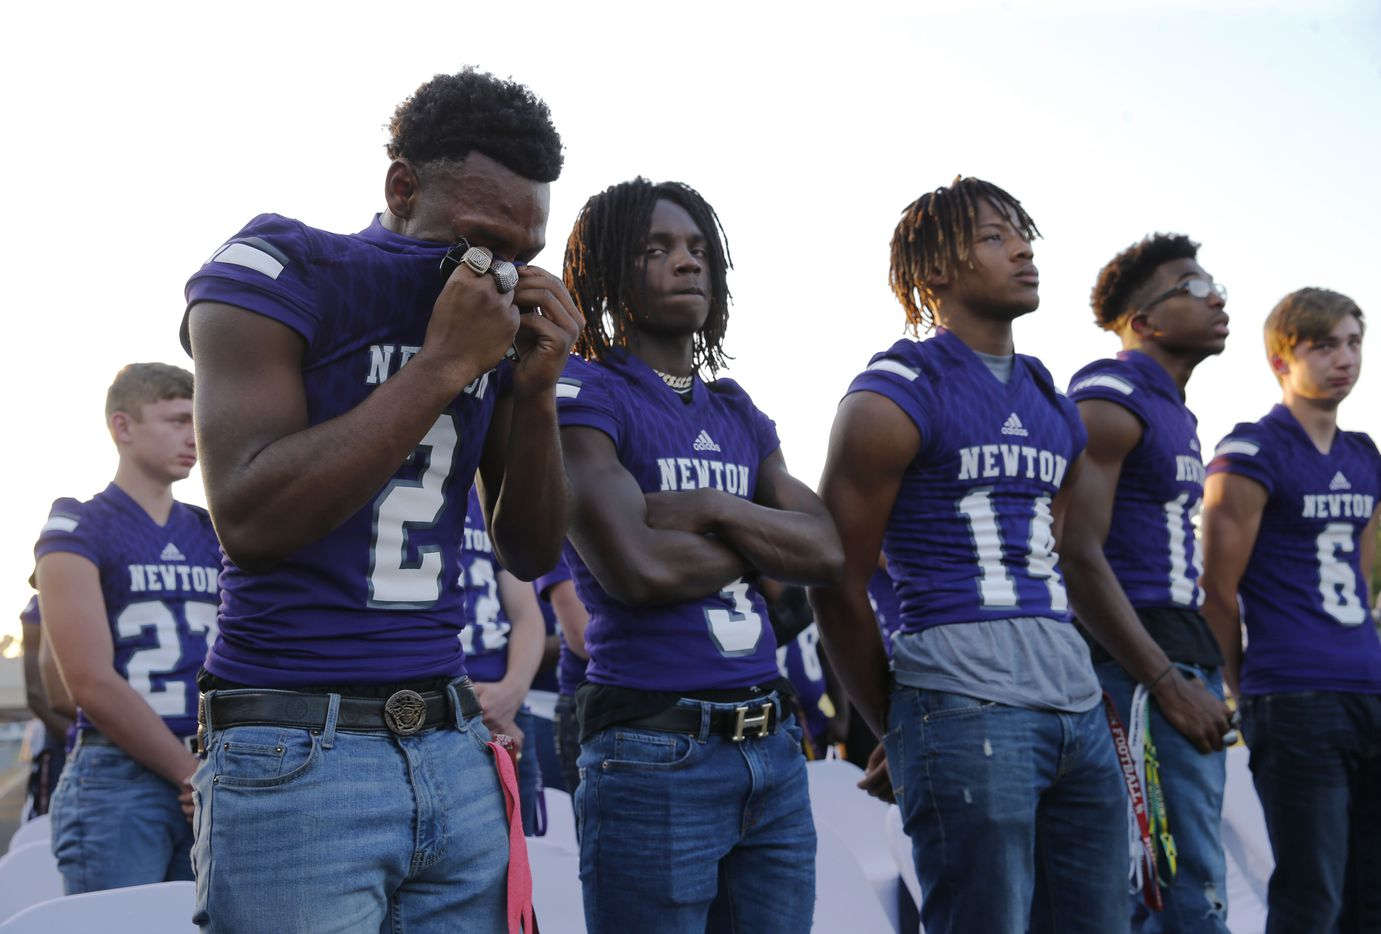 """Newton's Kevin Watson Jr. (2) wipes away tears during the memorial service for Newton High School head football coach William Theodore """"W.T."""" Johnston at Curtis Barbay Field at Newton High School in Newton, Texas on Wednesday, May 15, 2019. (Vernon Bryant/The Dallas Morning News)"""